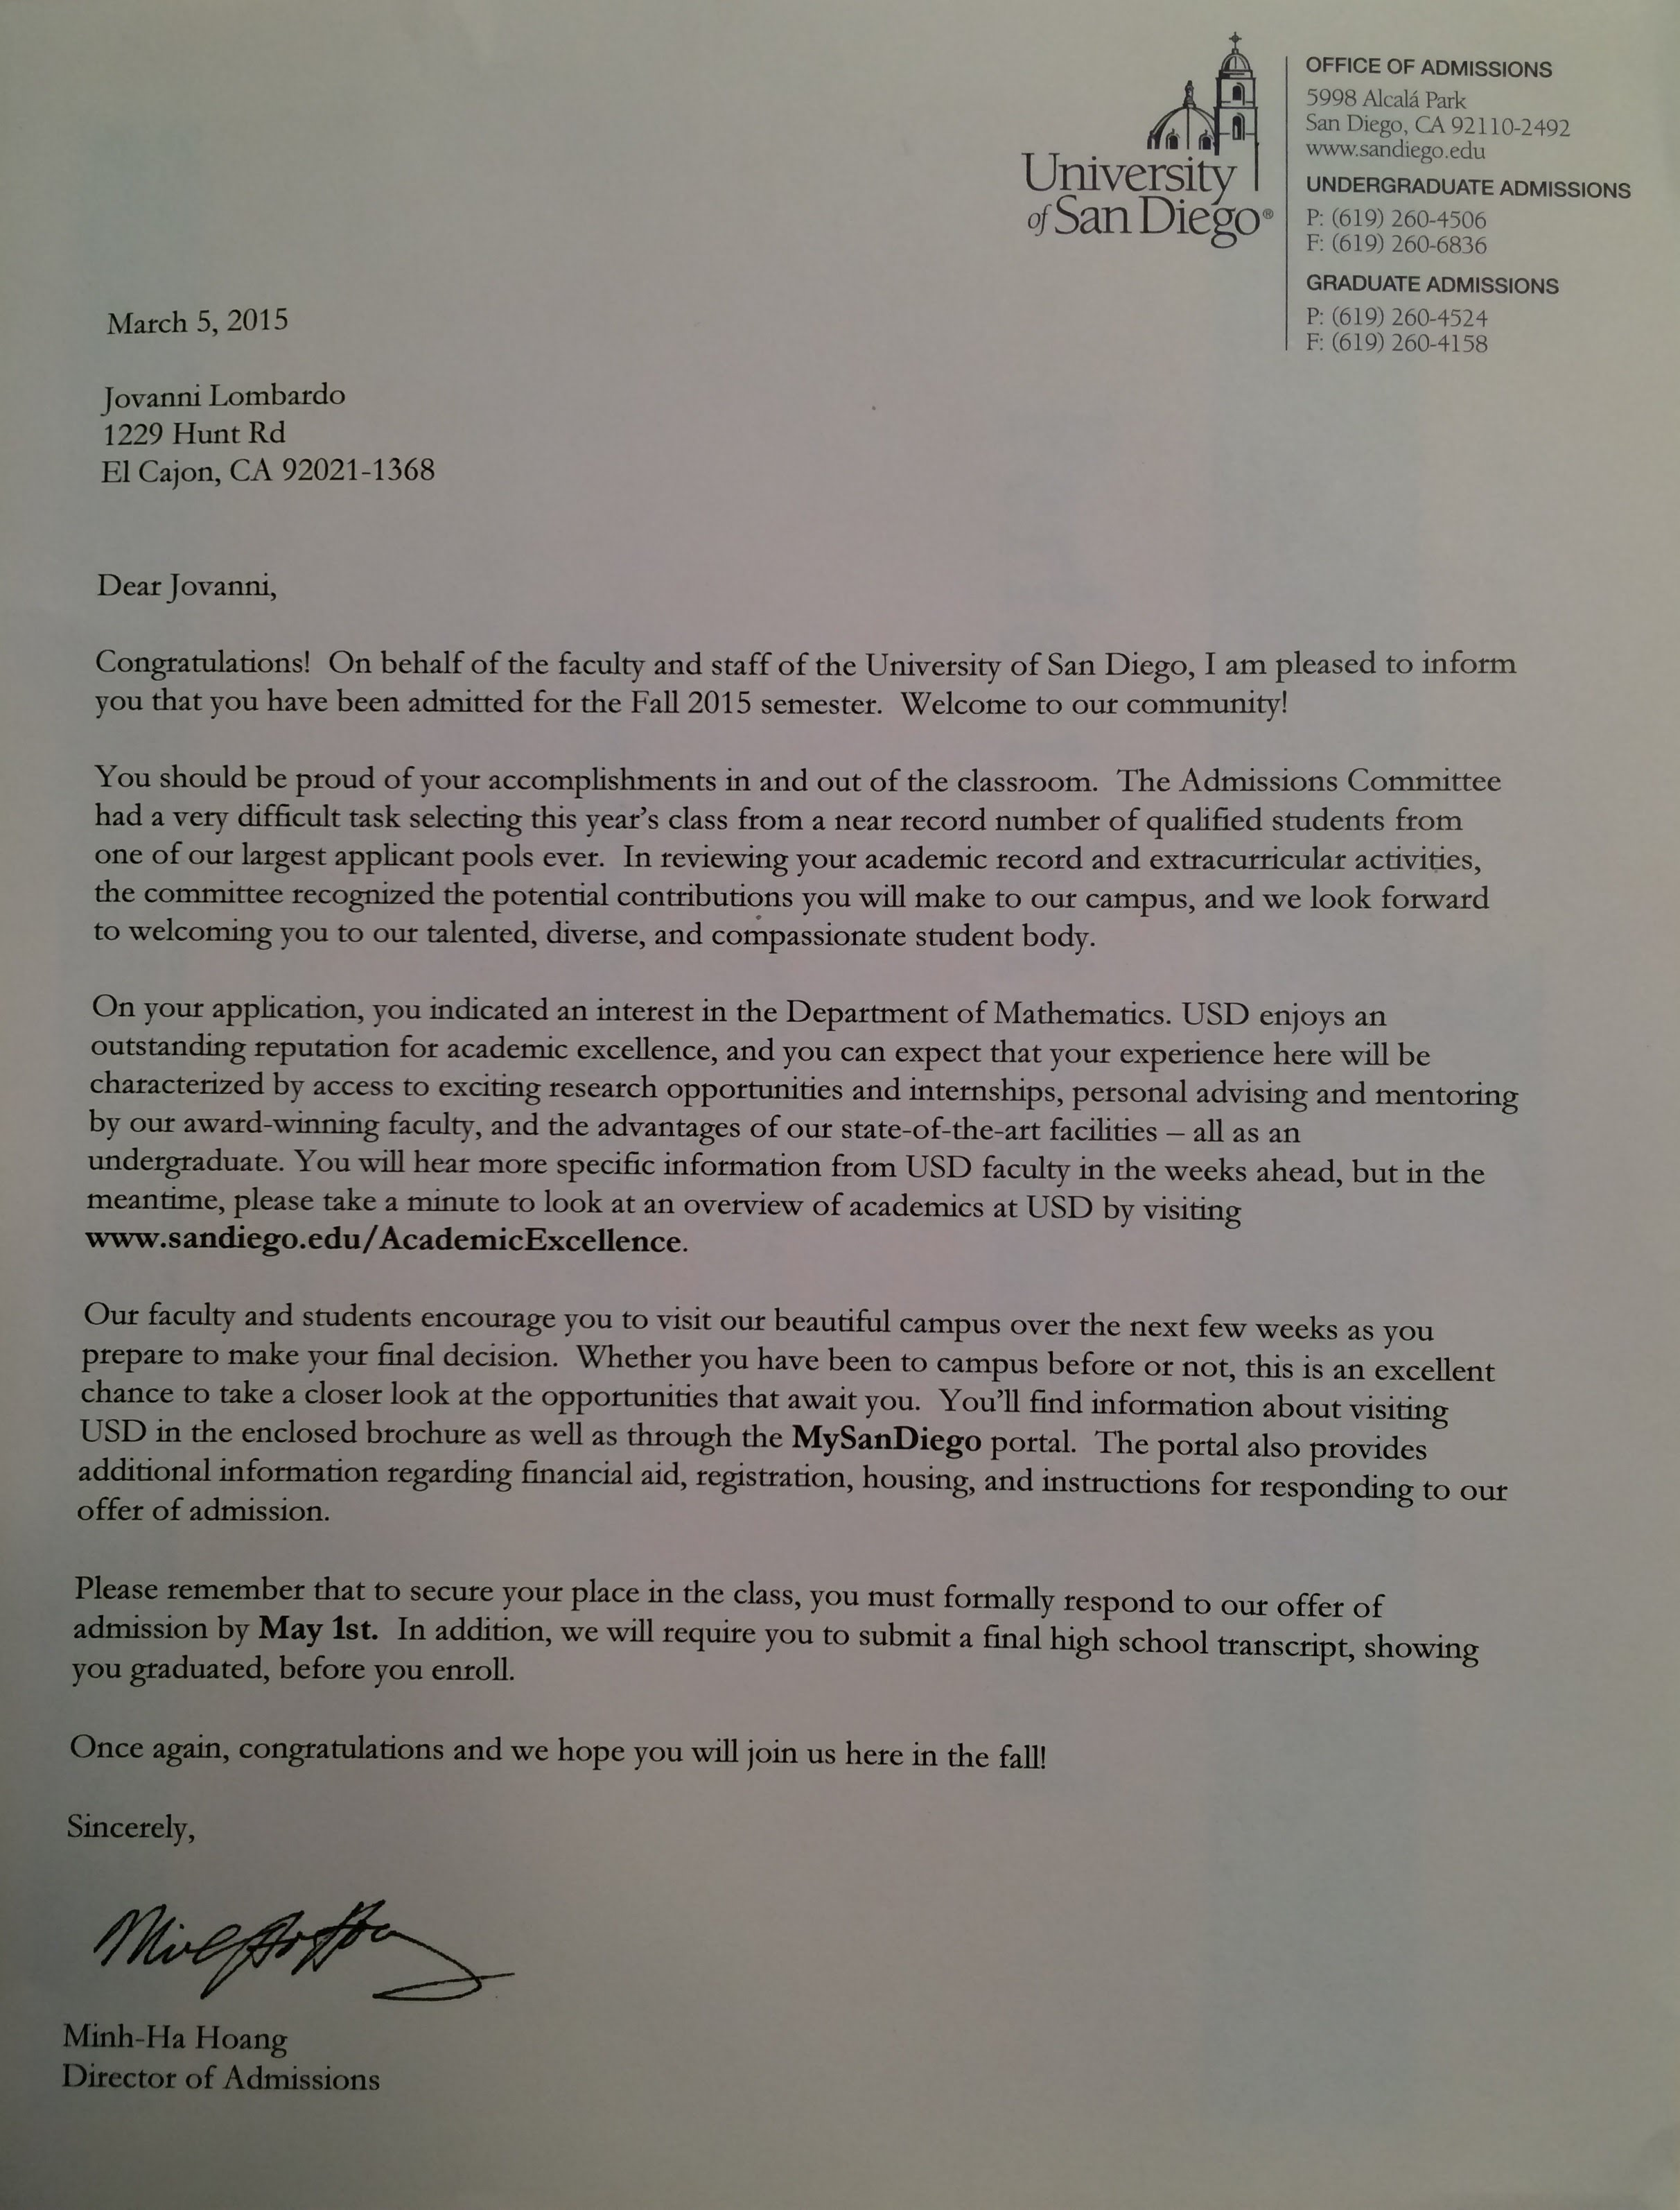 letter of college acceptance jovi lombardo s career portfolio to get accepted there an acceptance letter from usd requires outstanding grades and test scores extracurricular activities and community service